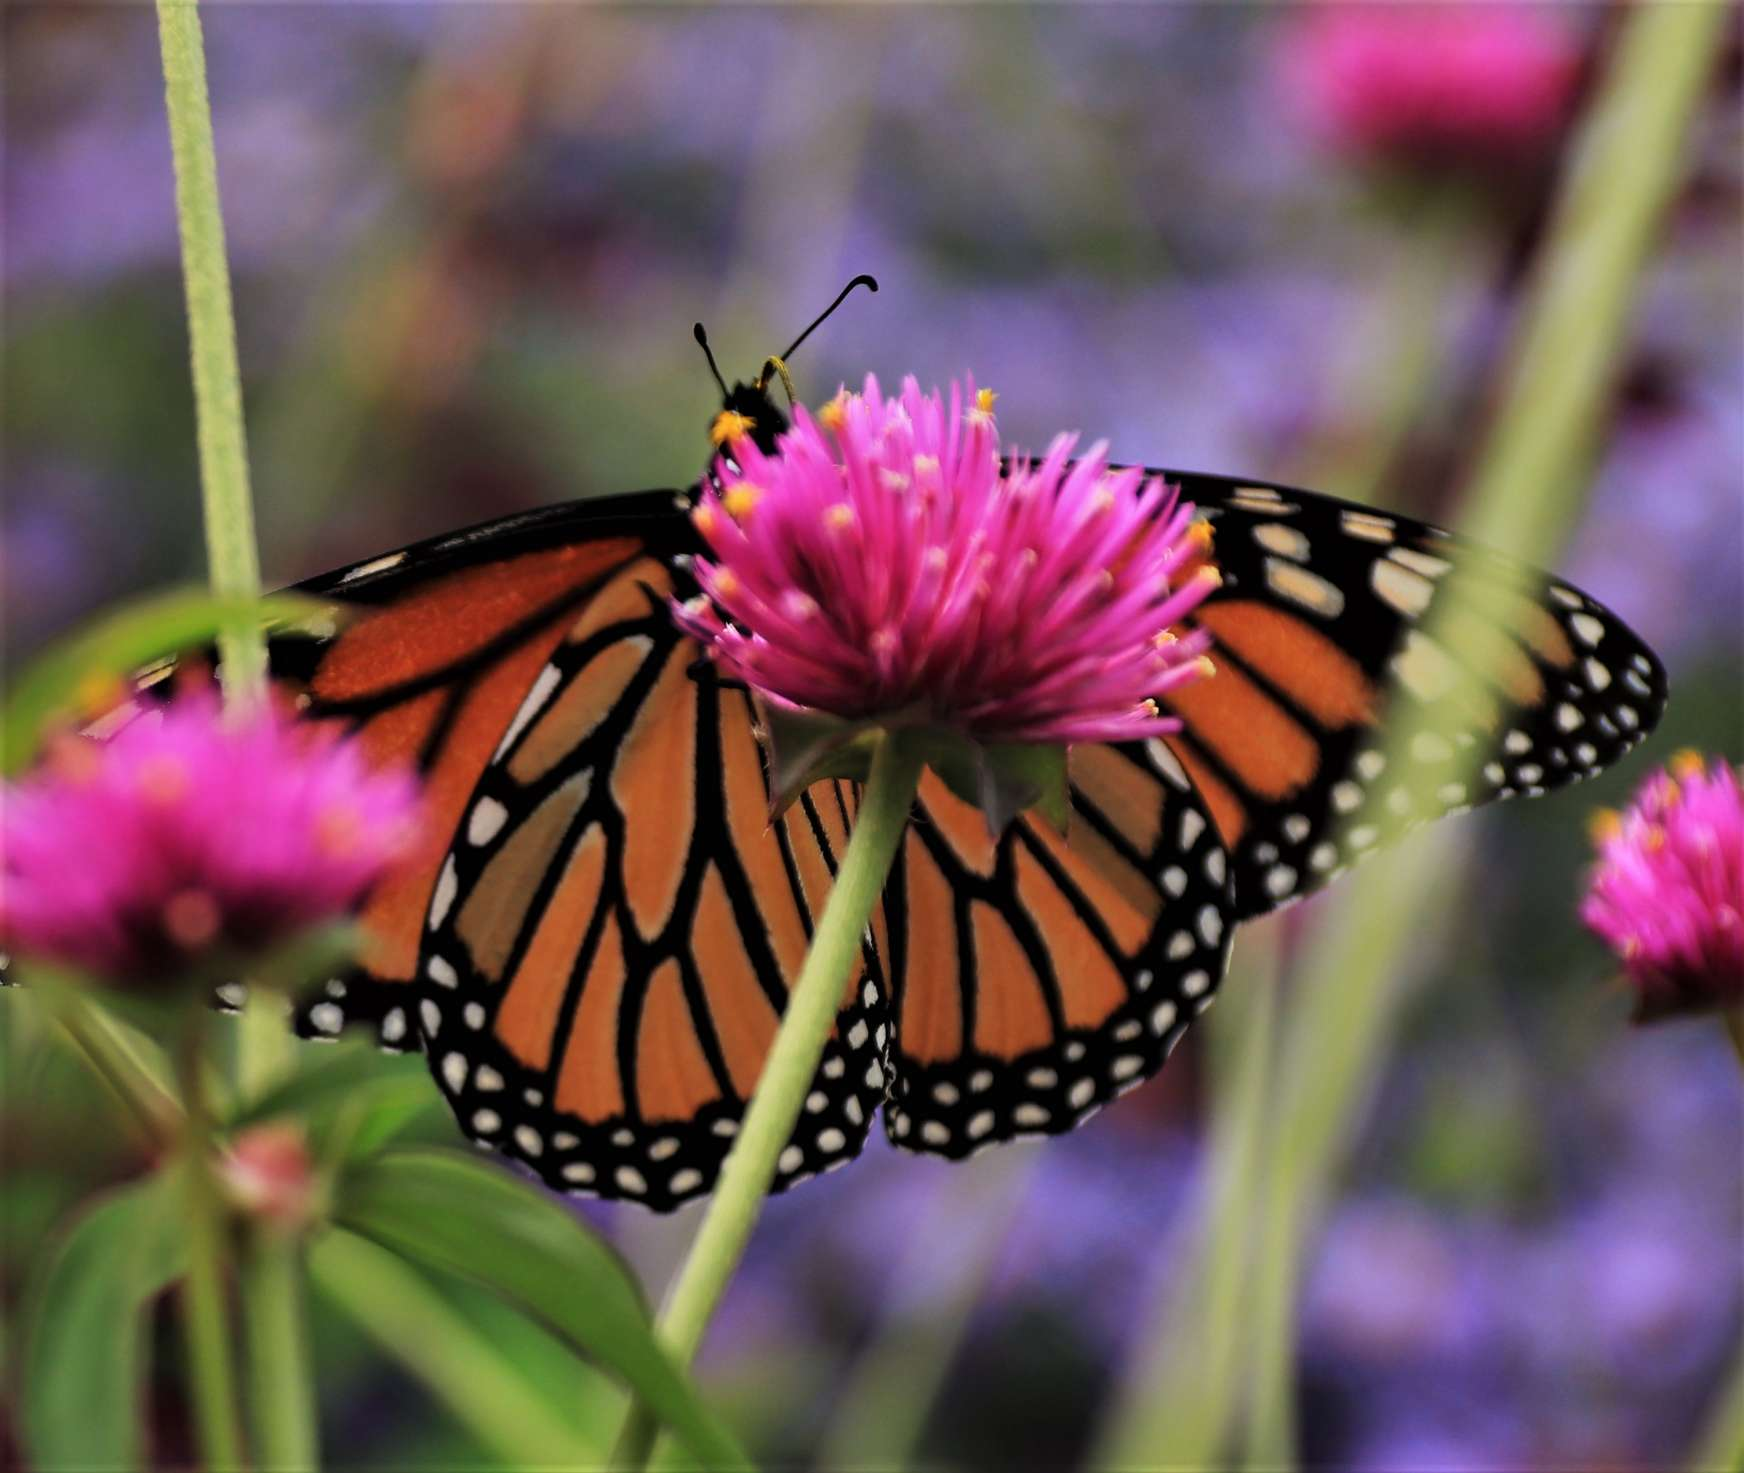 Attracting Pollinators to your yard….easy as 1-2-3